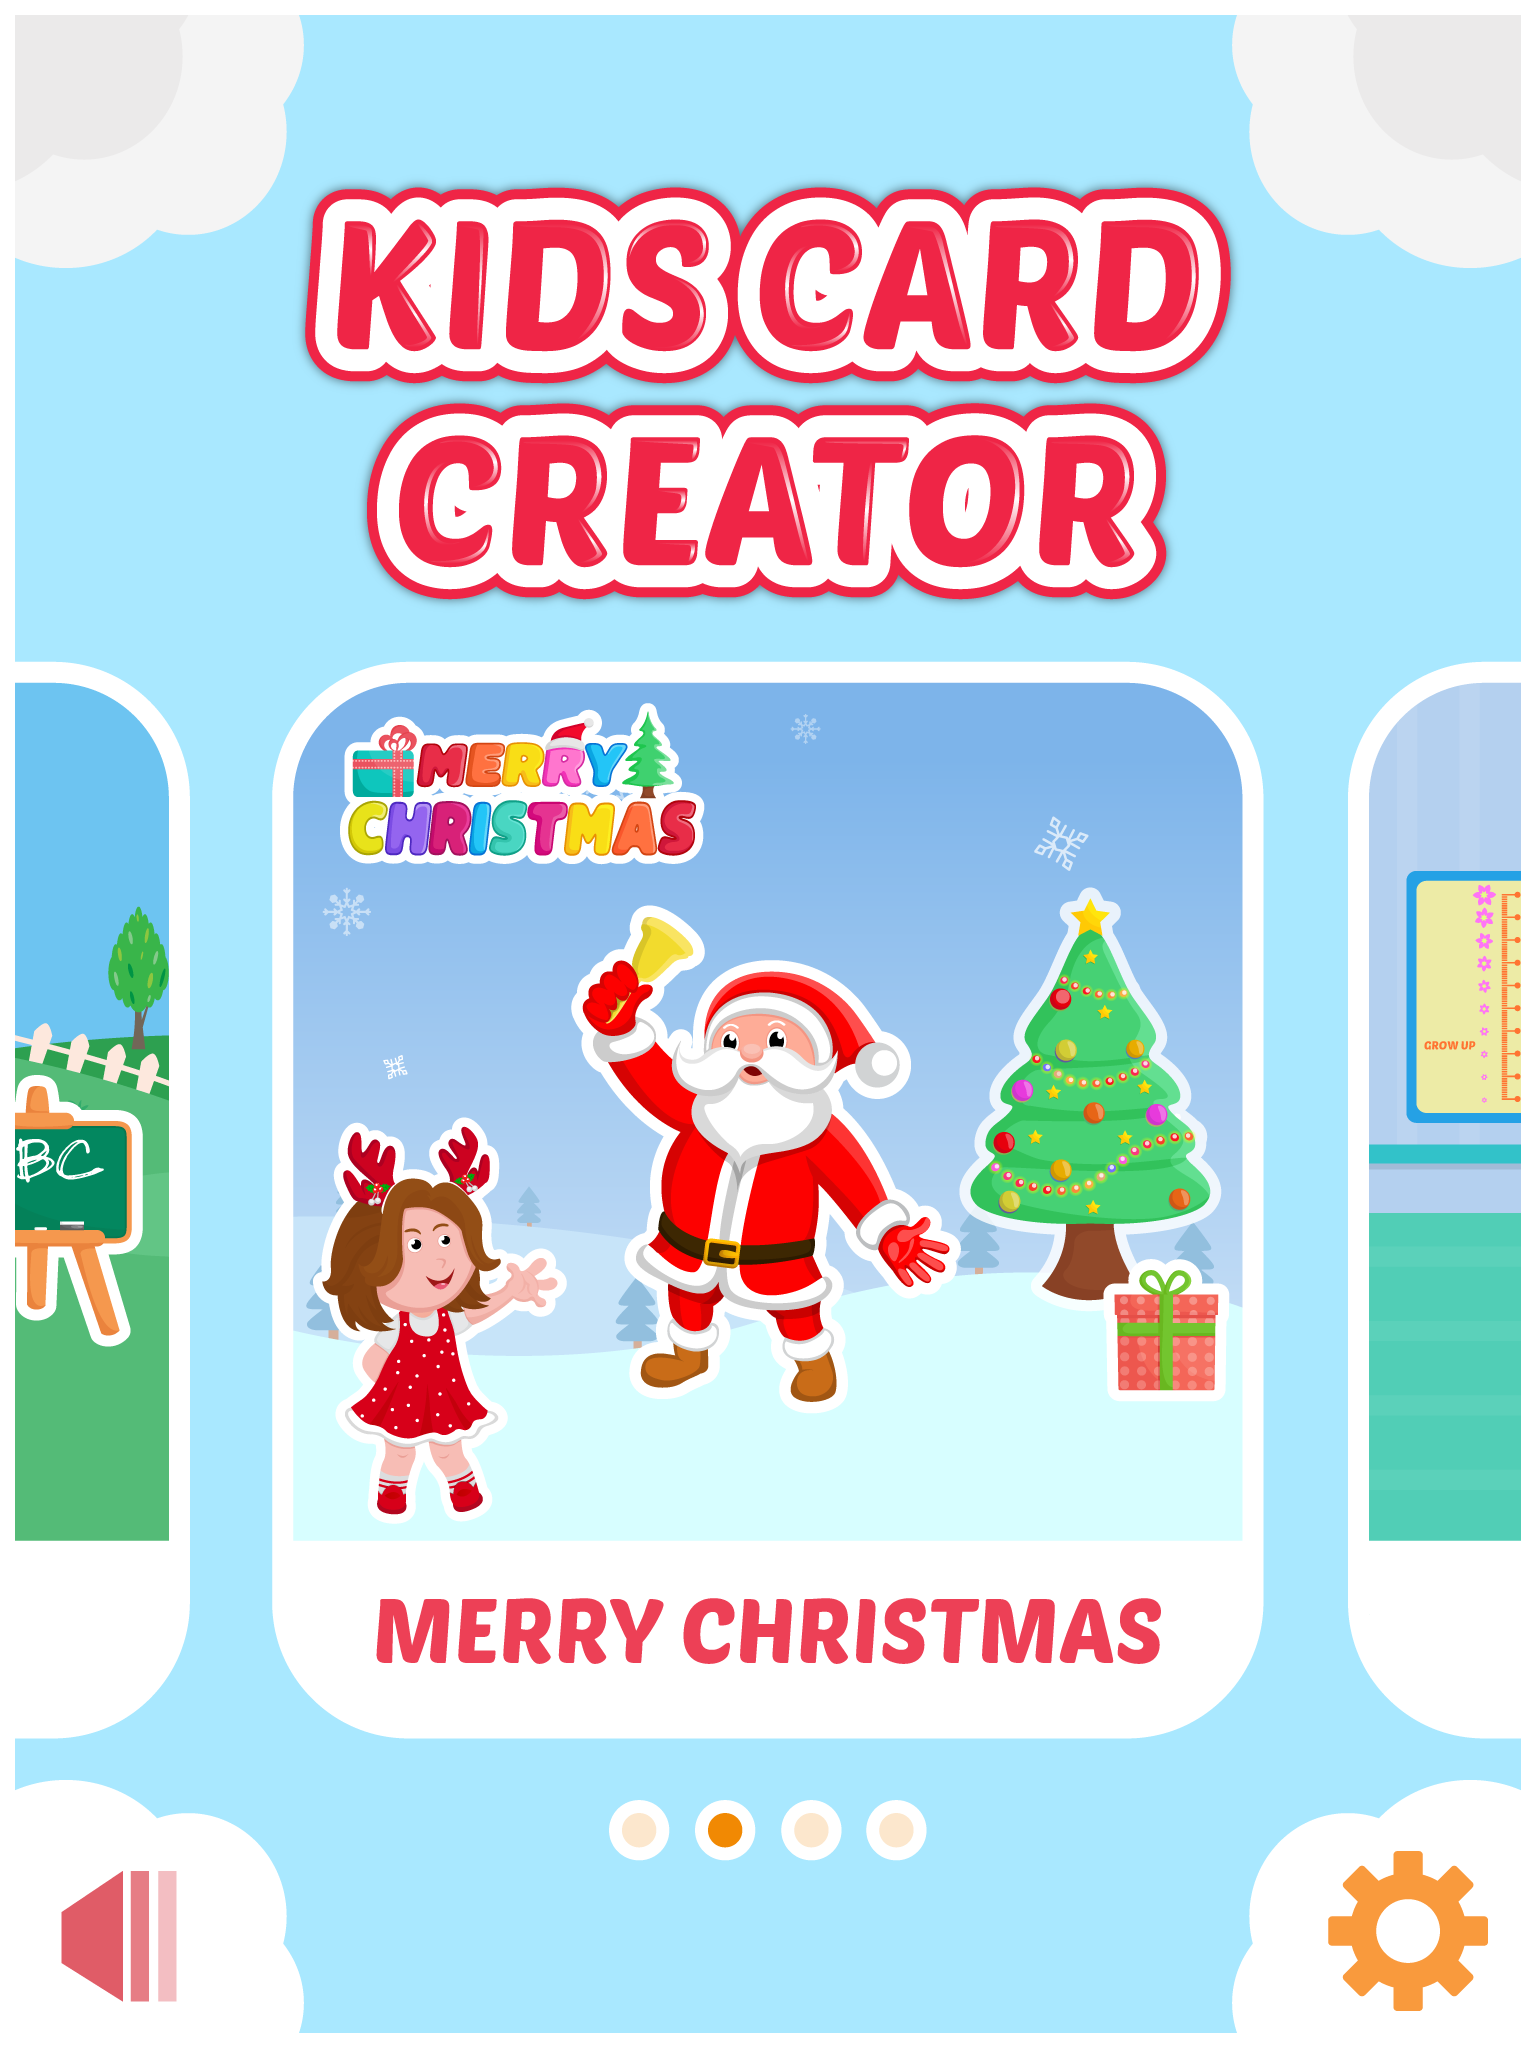 Personal Greeting Cards builder for Kids. Create unique, customized ...